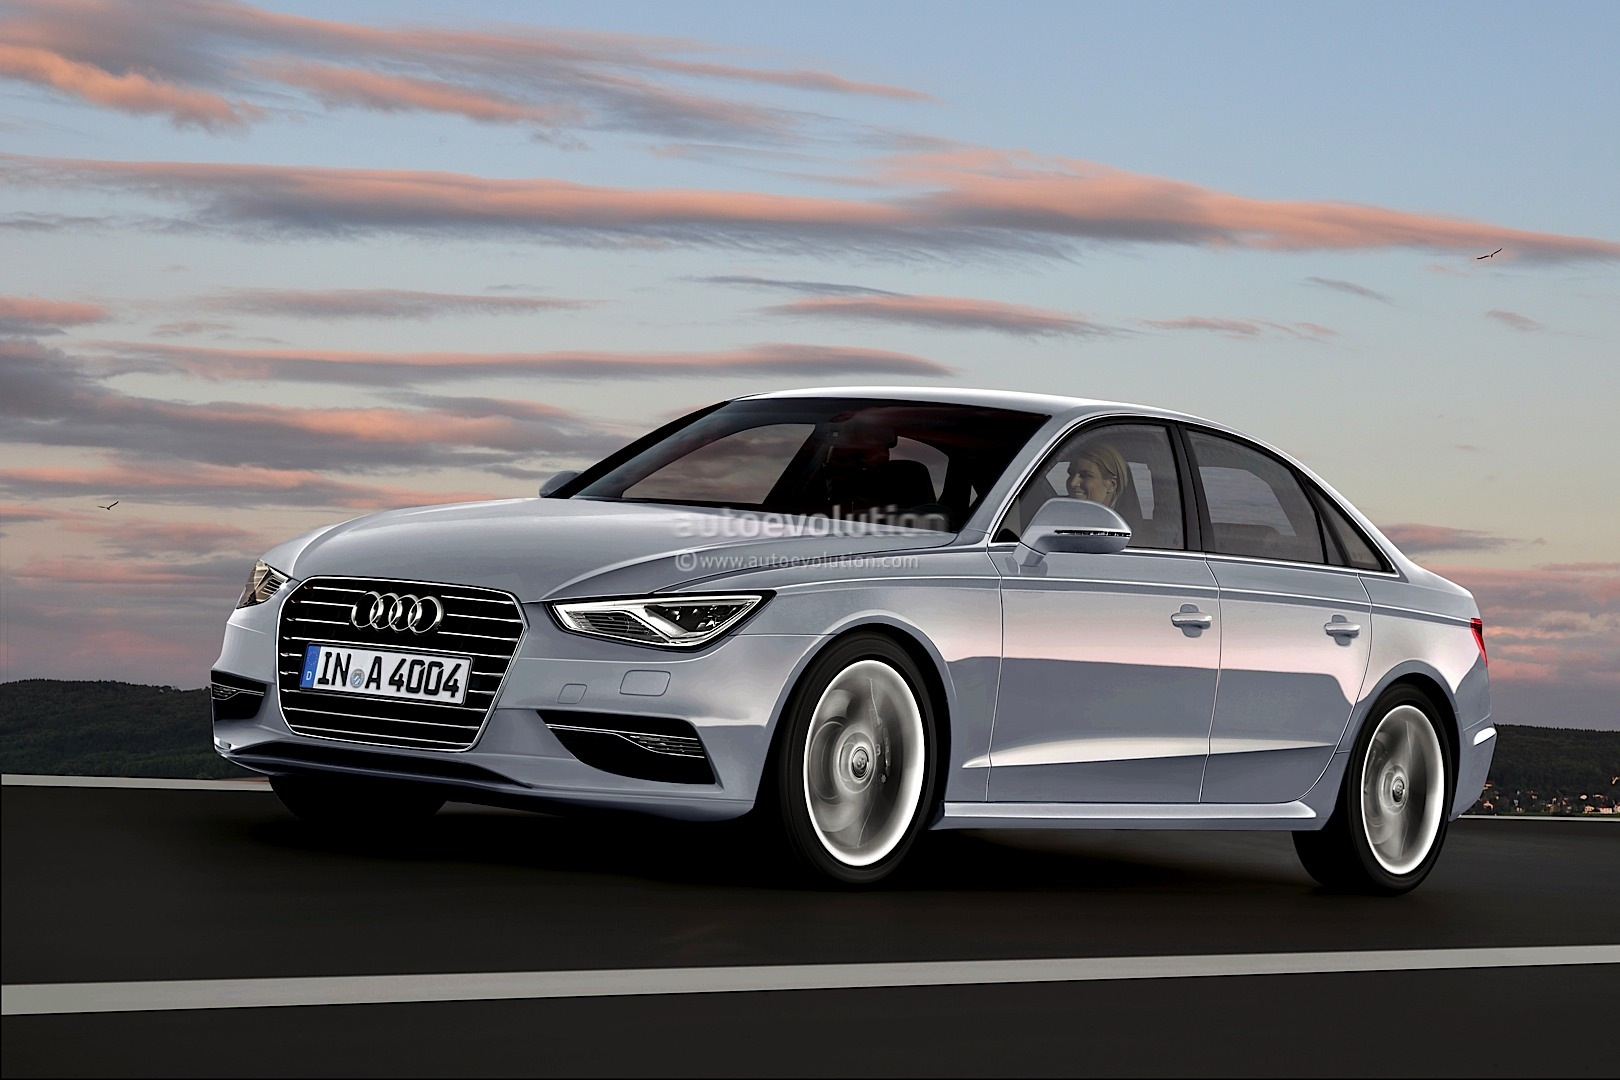 2014 audi a4 b9 rendering released autoevolution. Black Bedroom Furniture Sets. Home Design Ideas